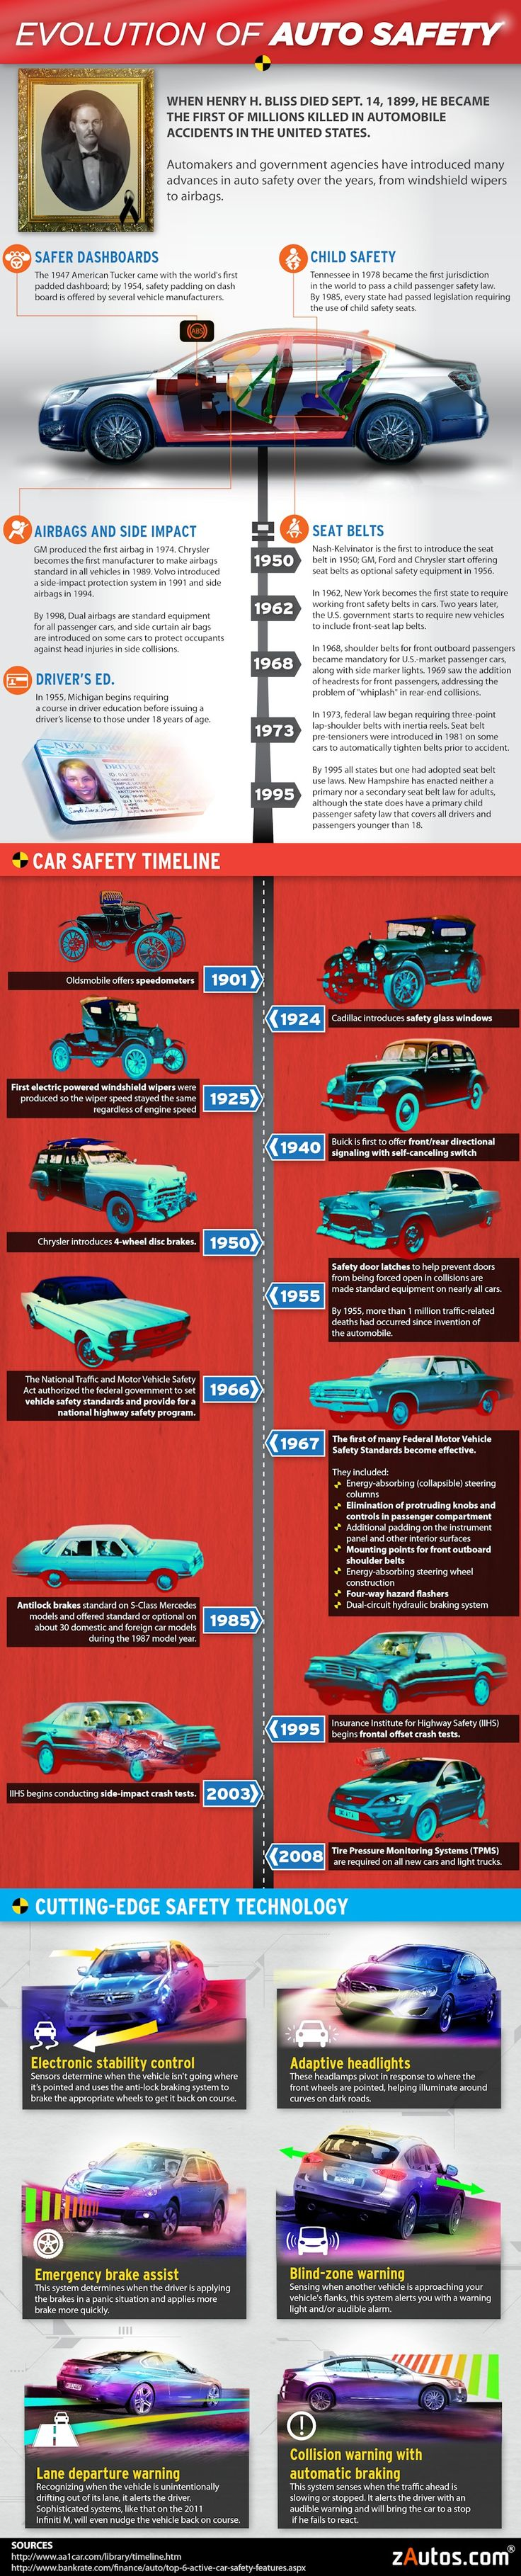 Evolution of Auto Safety Info Graphic Collision Repair Specialists - 100% Start to Finish for You! 816.232.5886